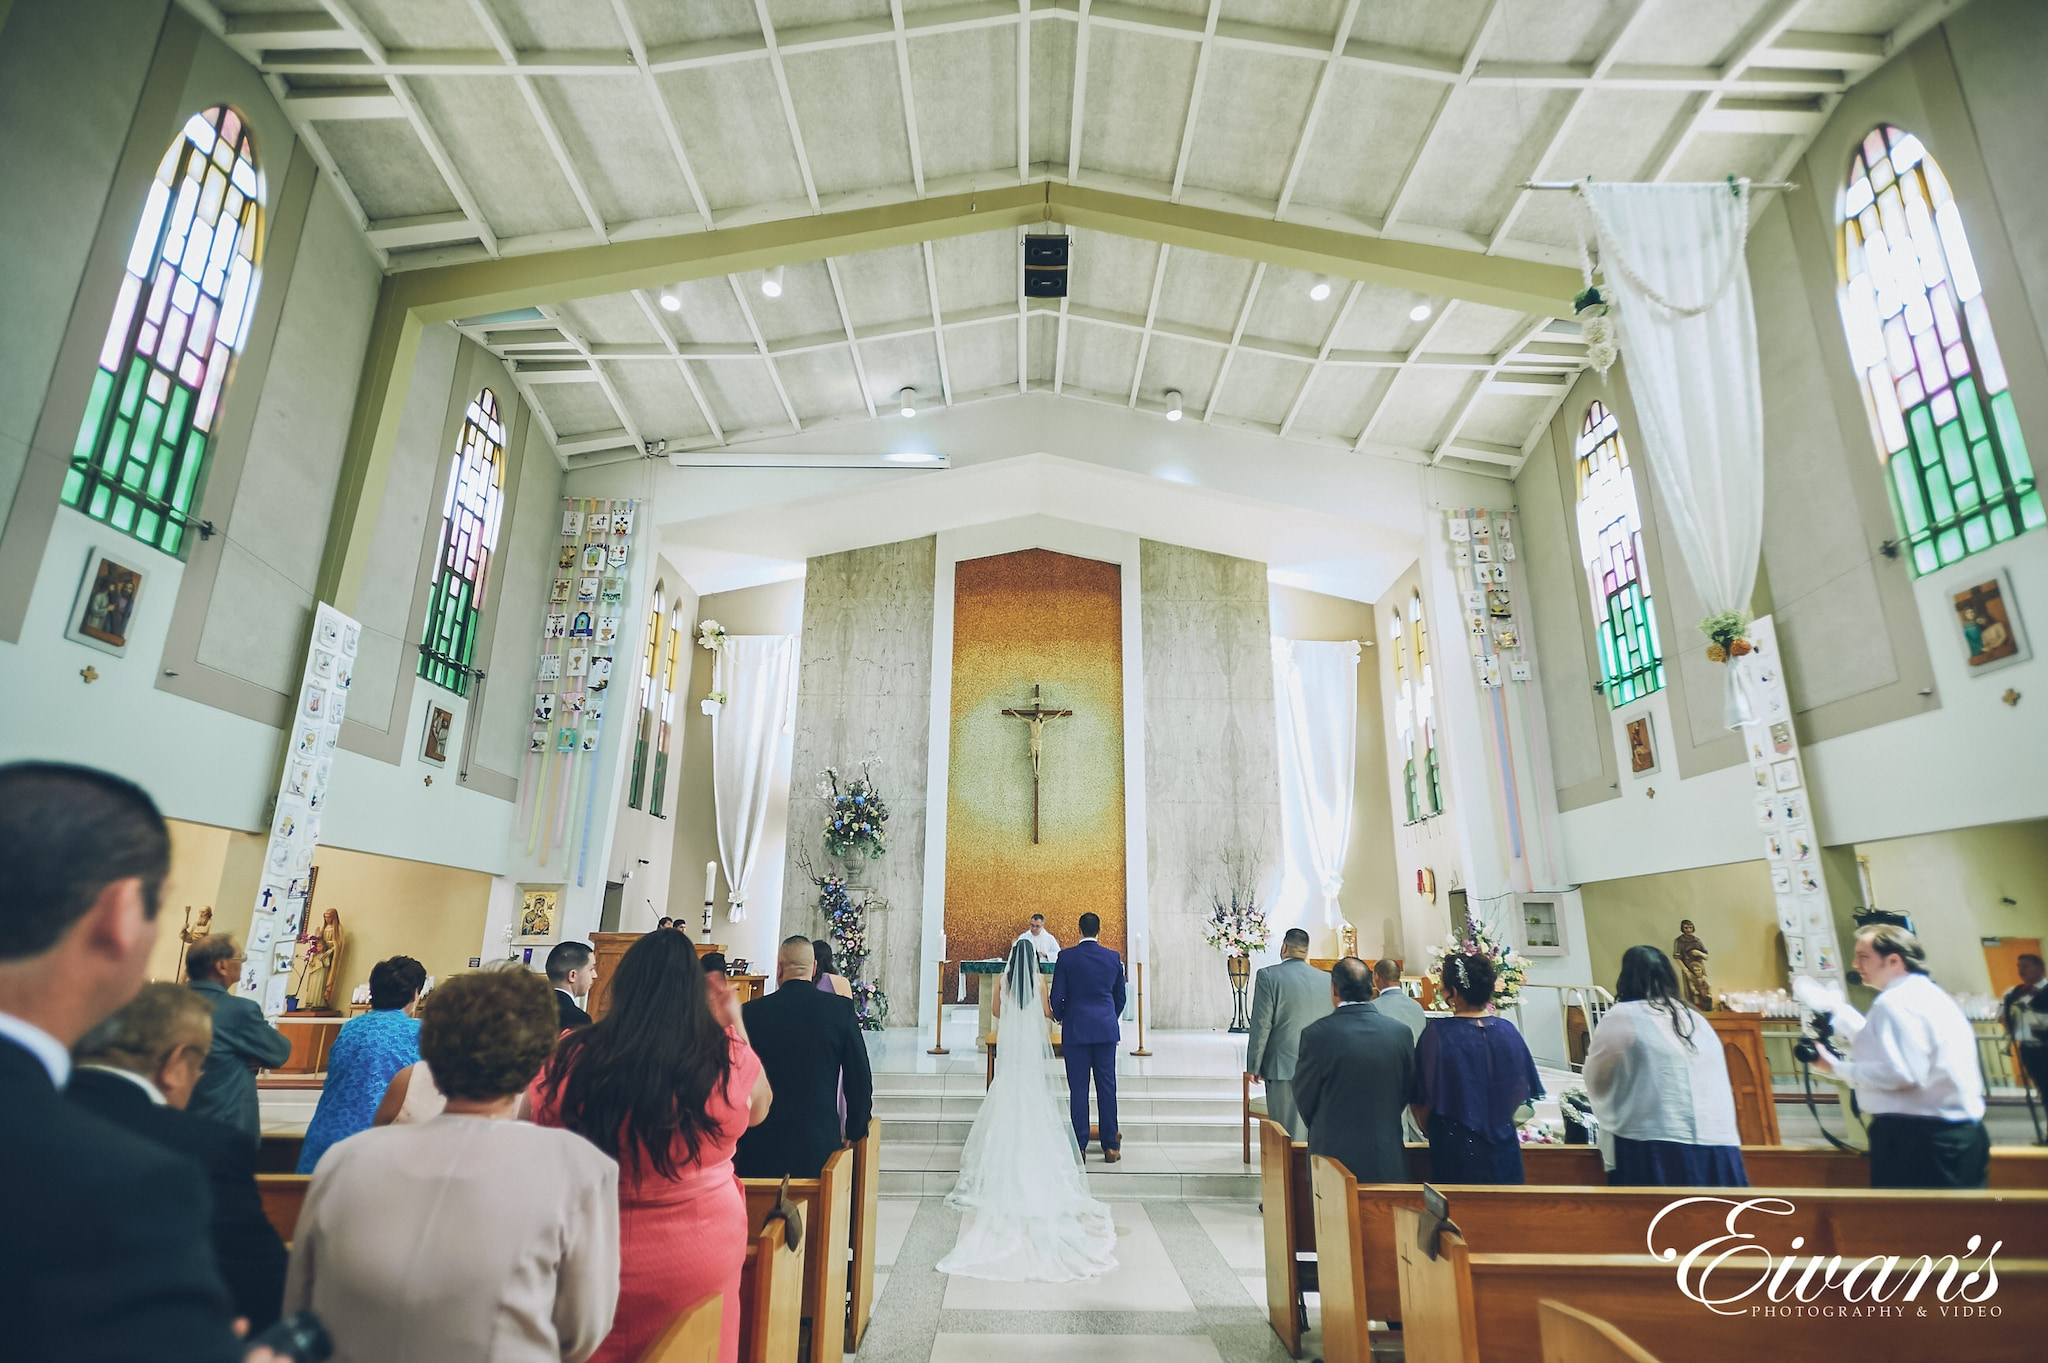 bride and groom at the alter in a church